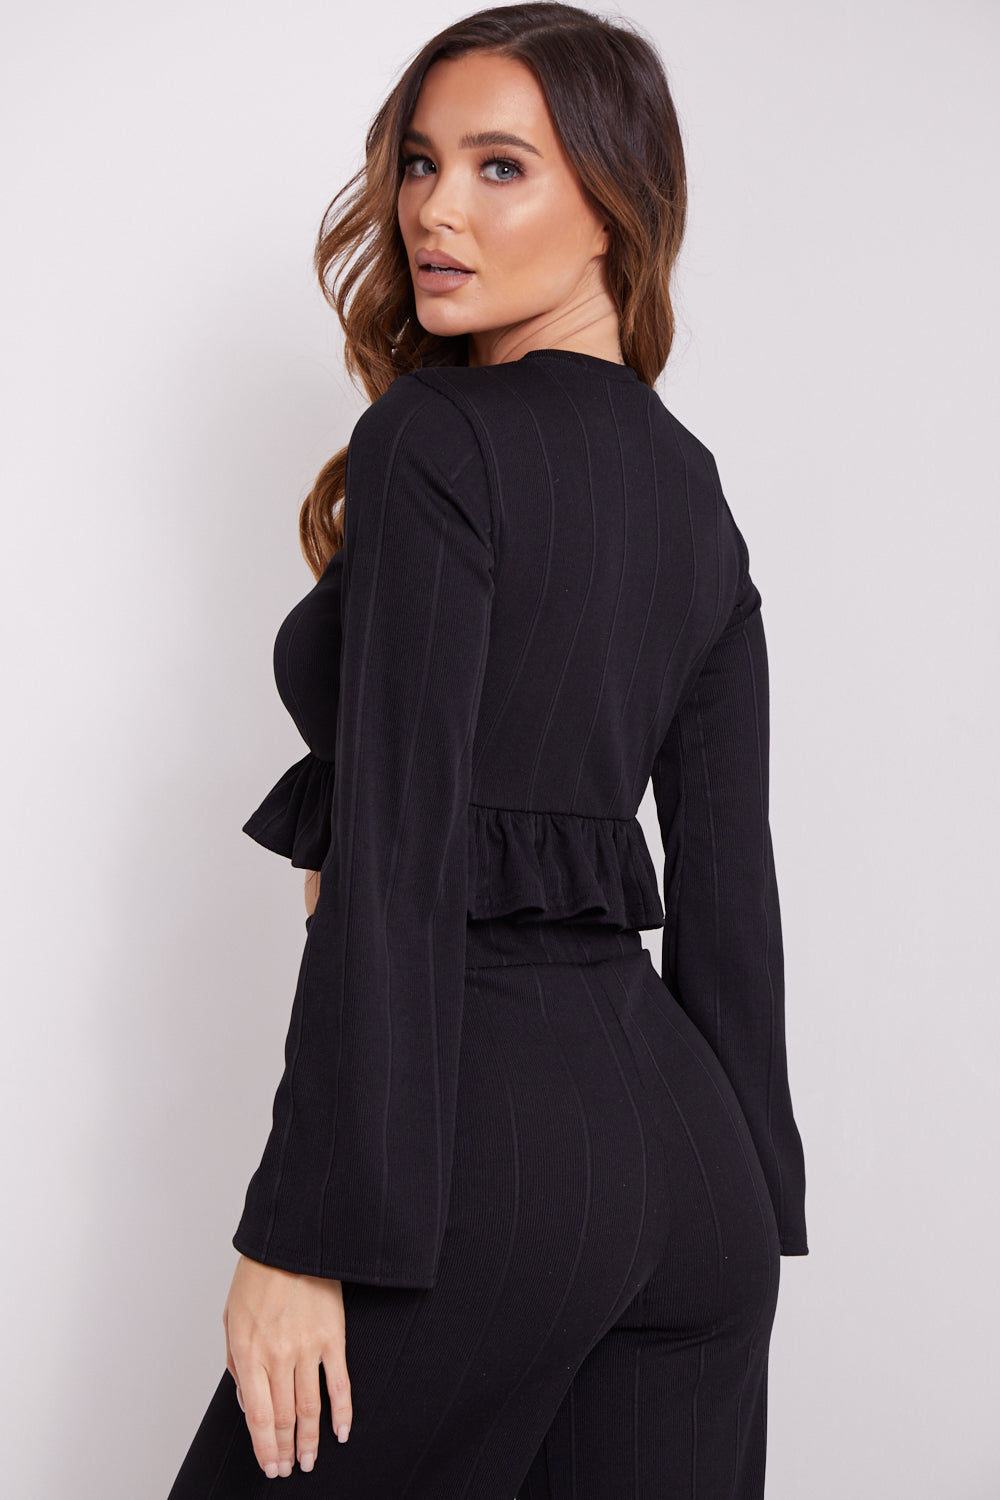 Black Frill Crop Top and Wide Leg Trousers Co-Ord